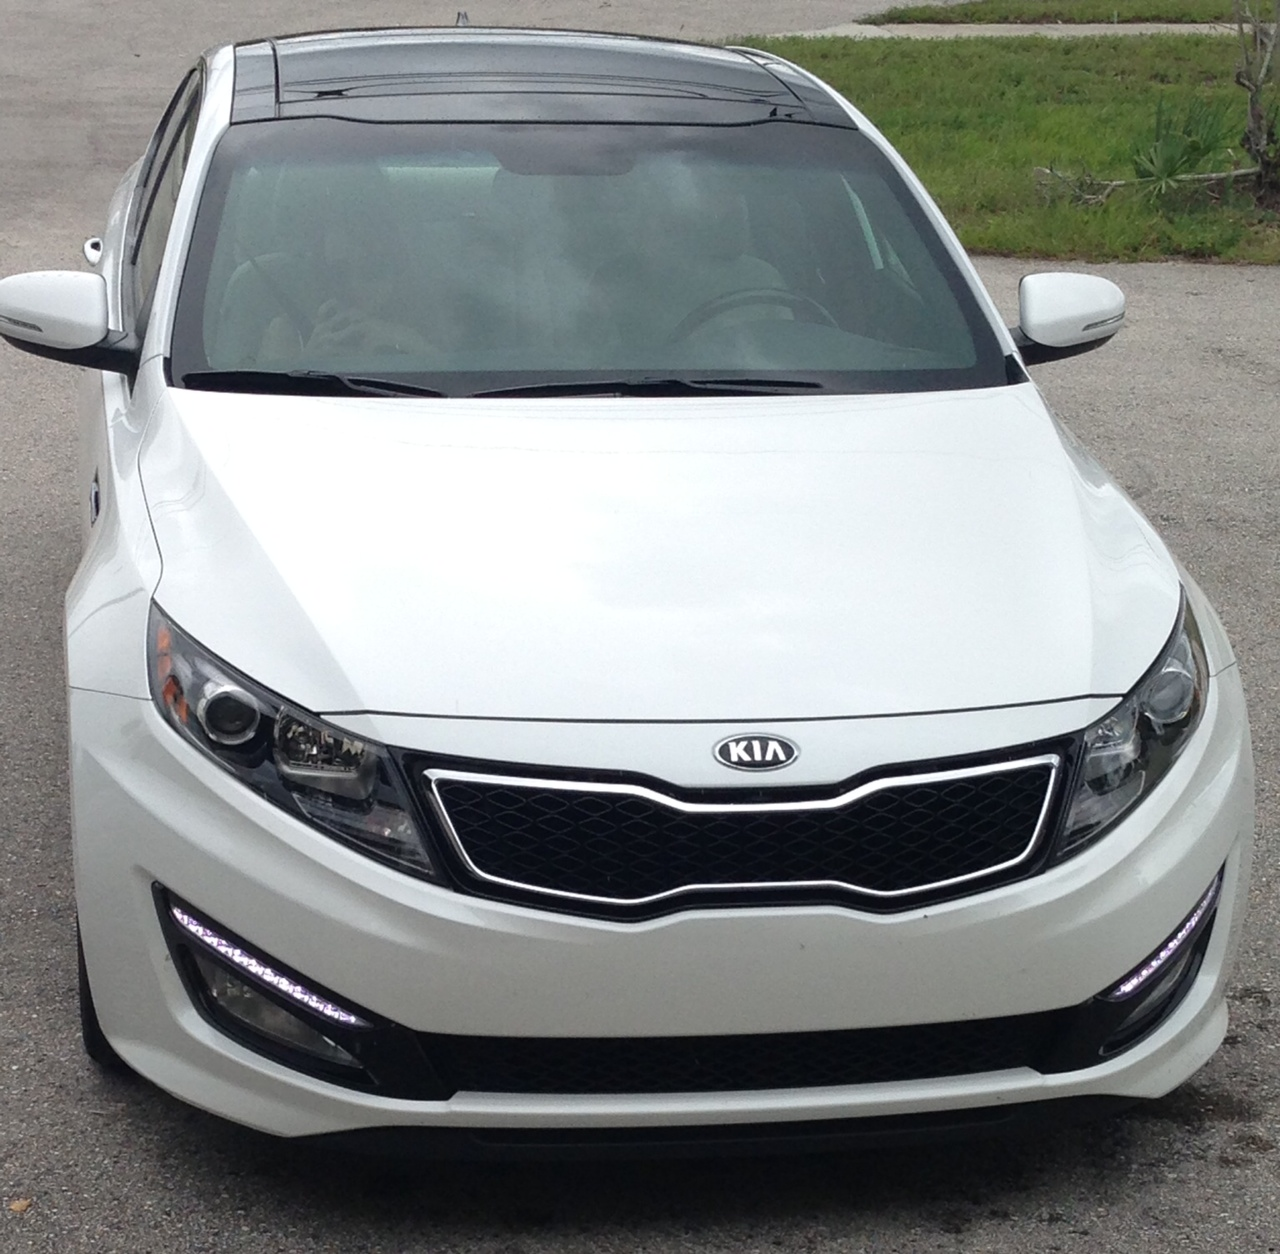 2013 kia optima sx limited drive in luxury who said nothing in life is free. Black Bedroom Furniture Sets. Home Design Ideas